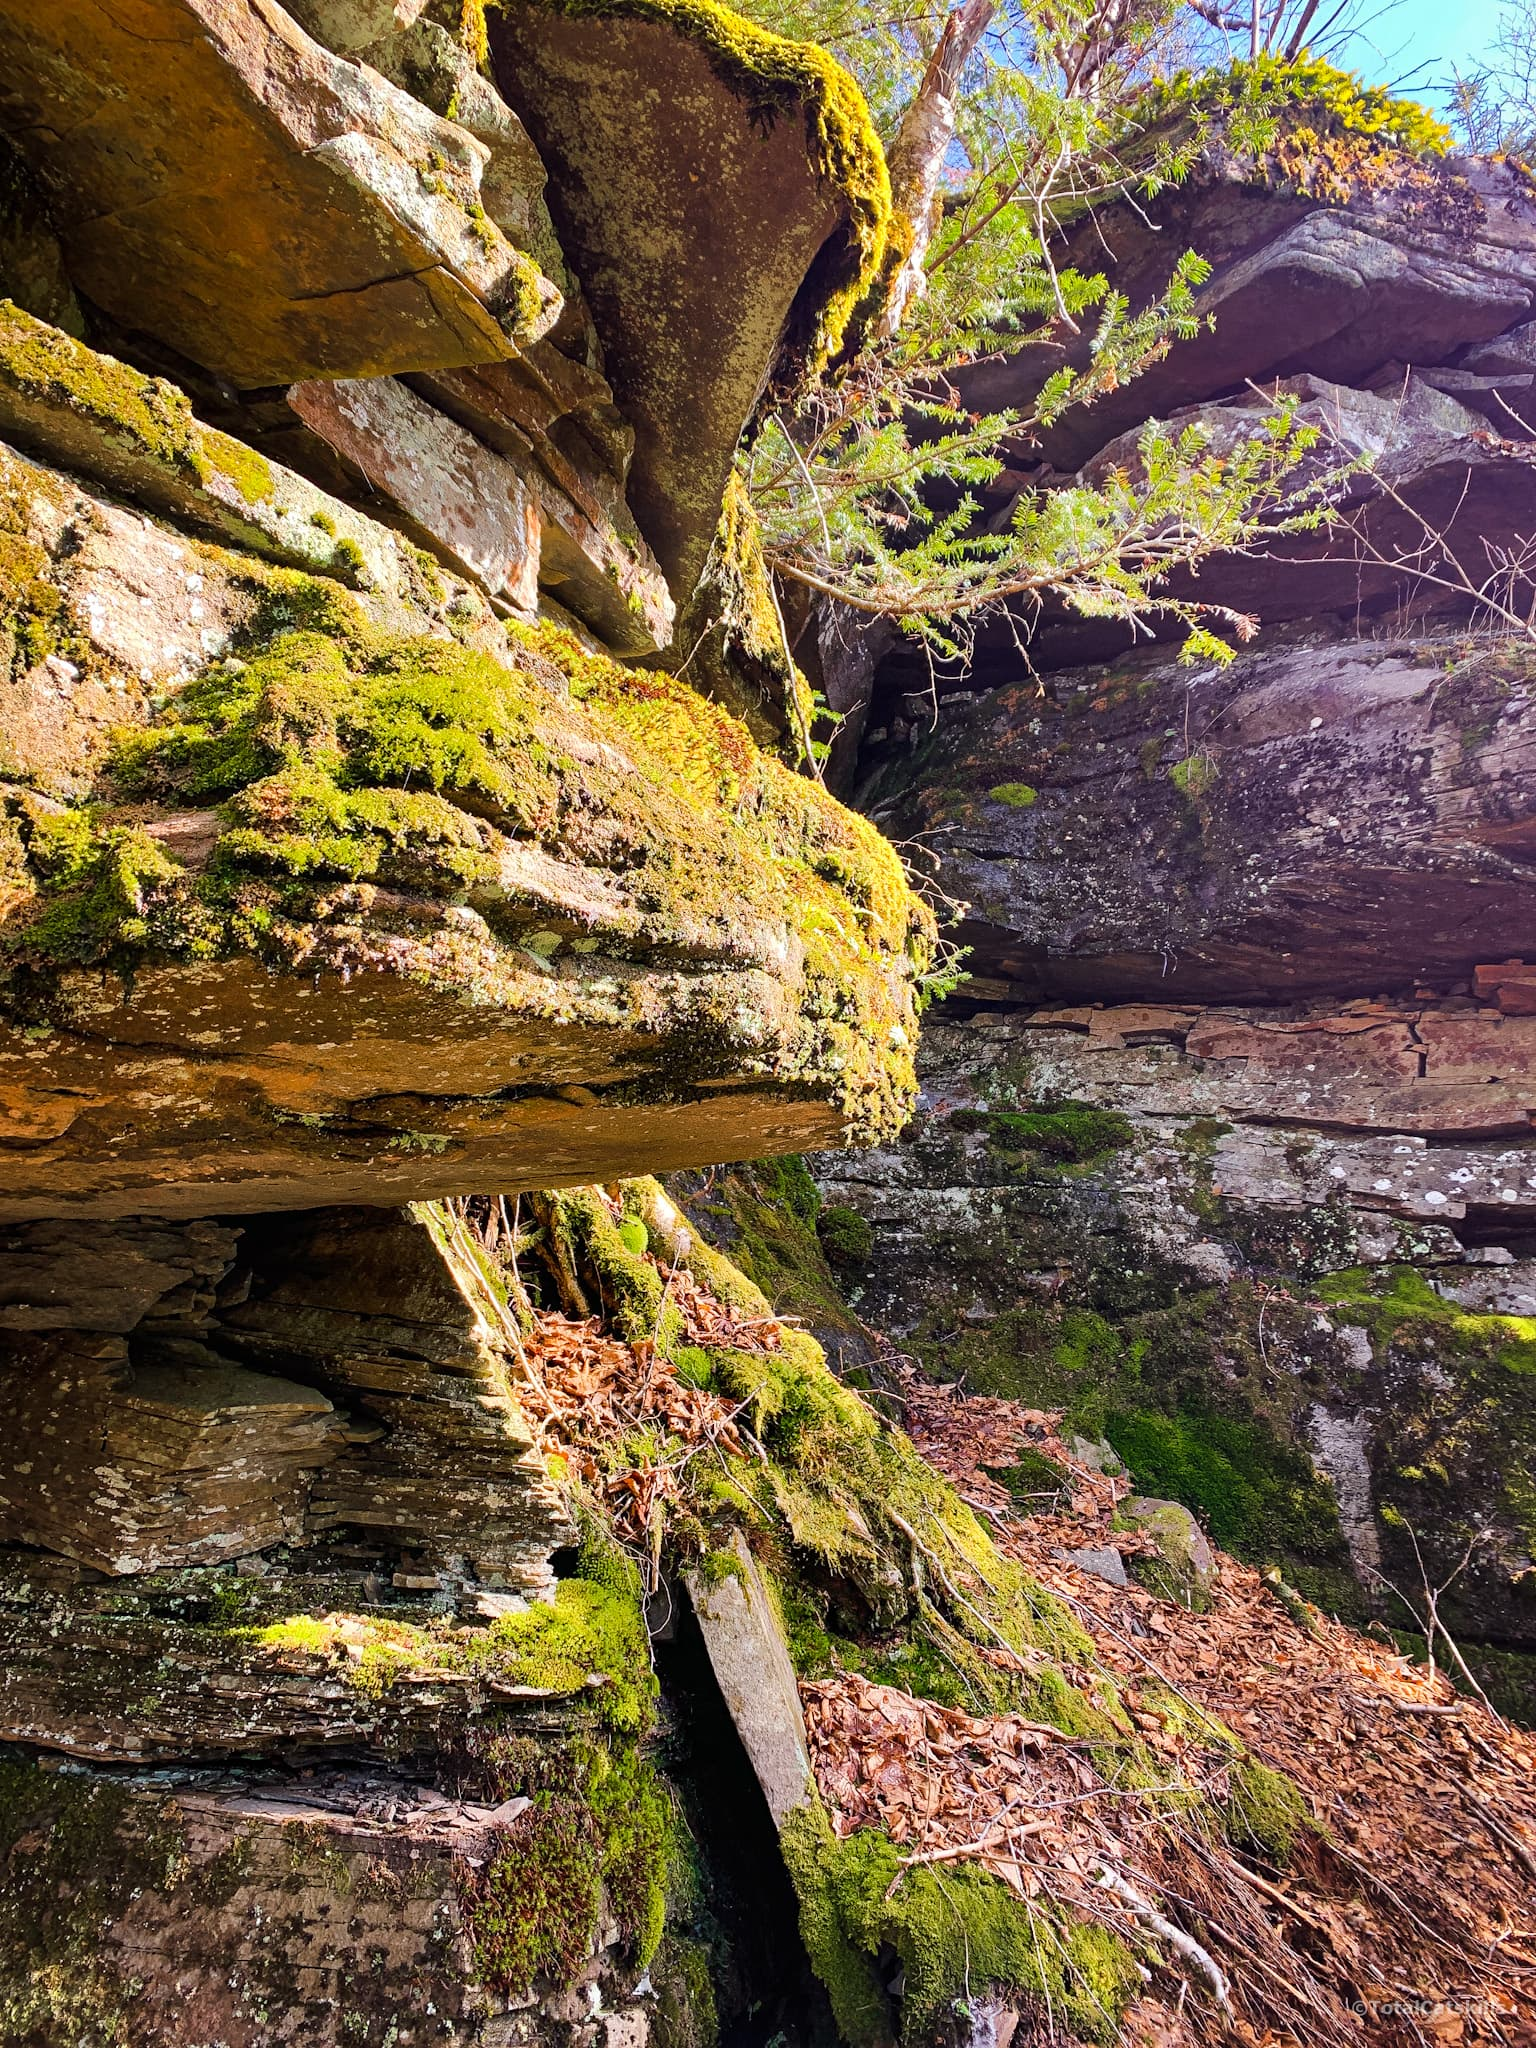 Rock face with moss